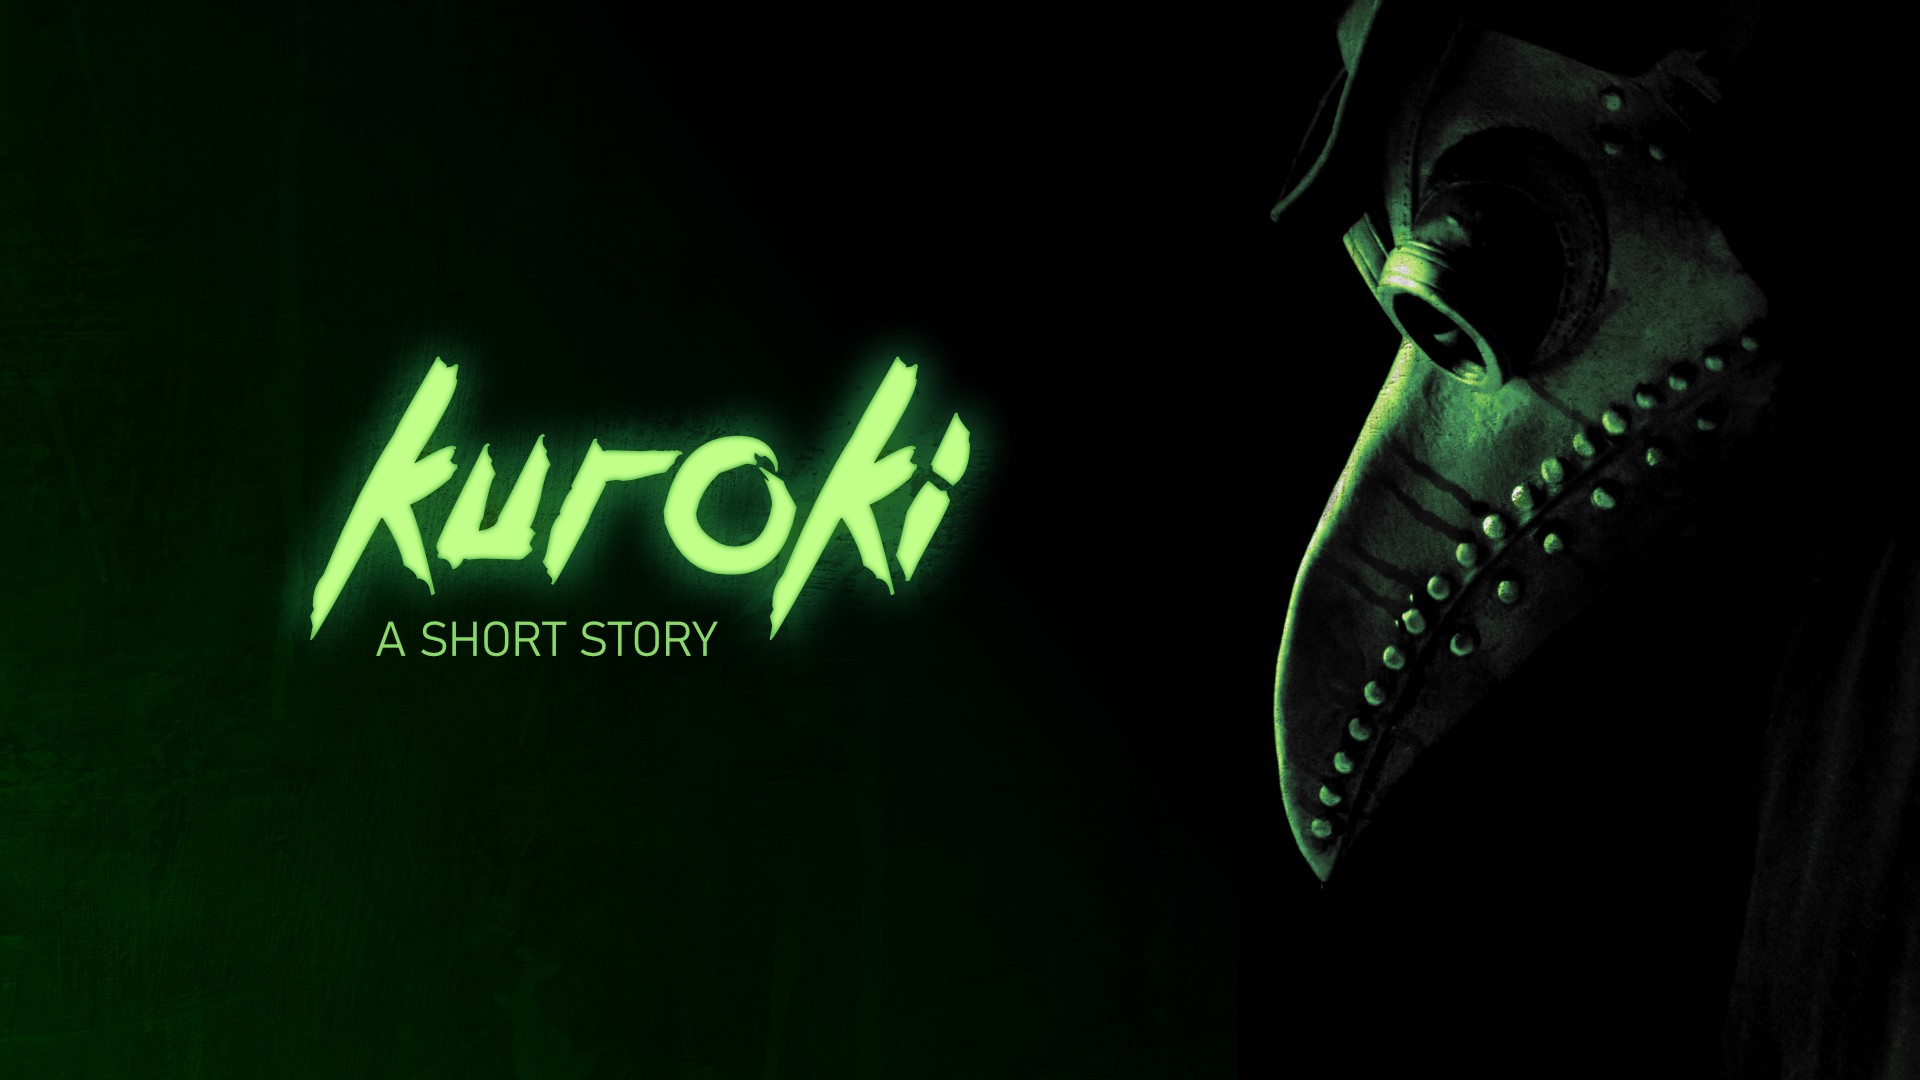 Kuroki - A short story cover shot with green glowing text and a plague doctor mask in the shadows